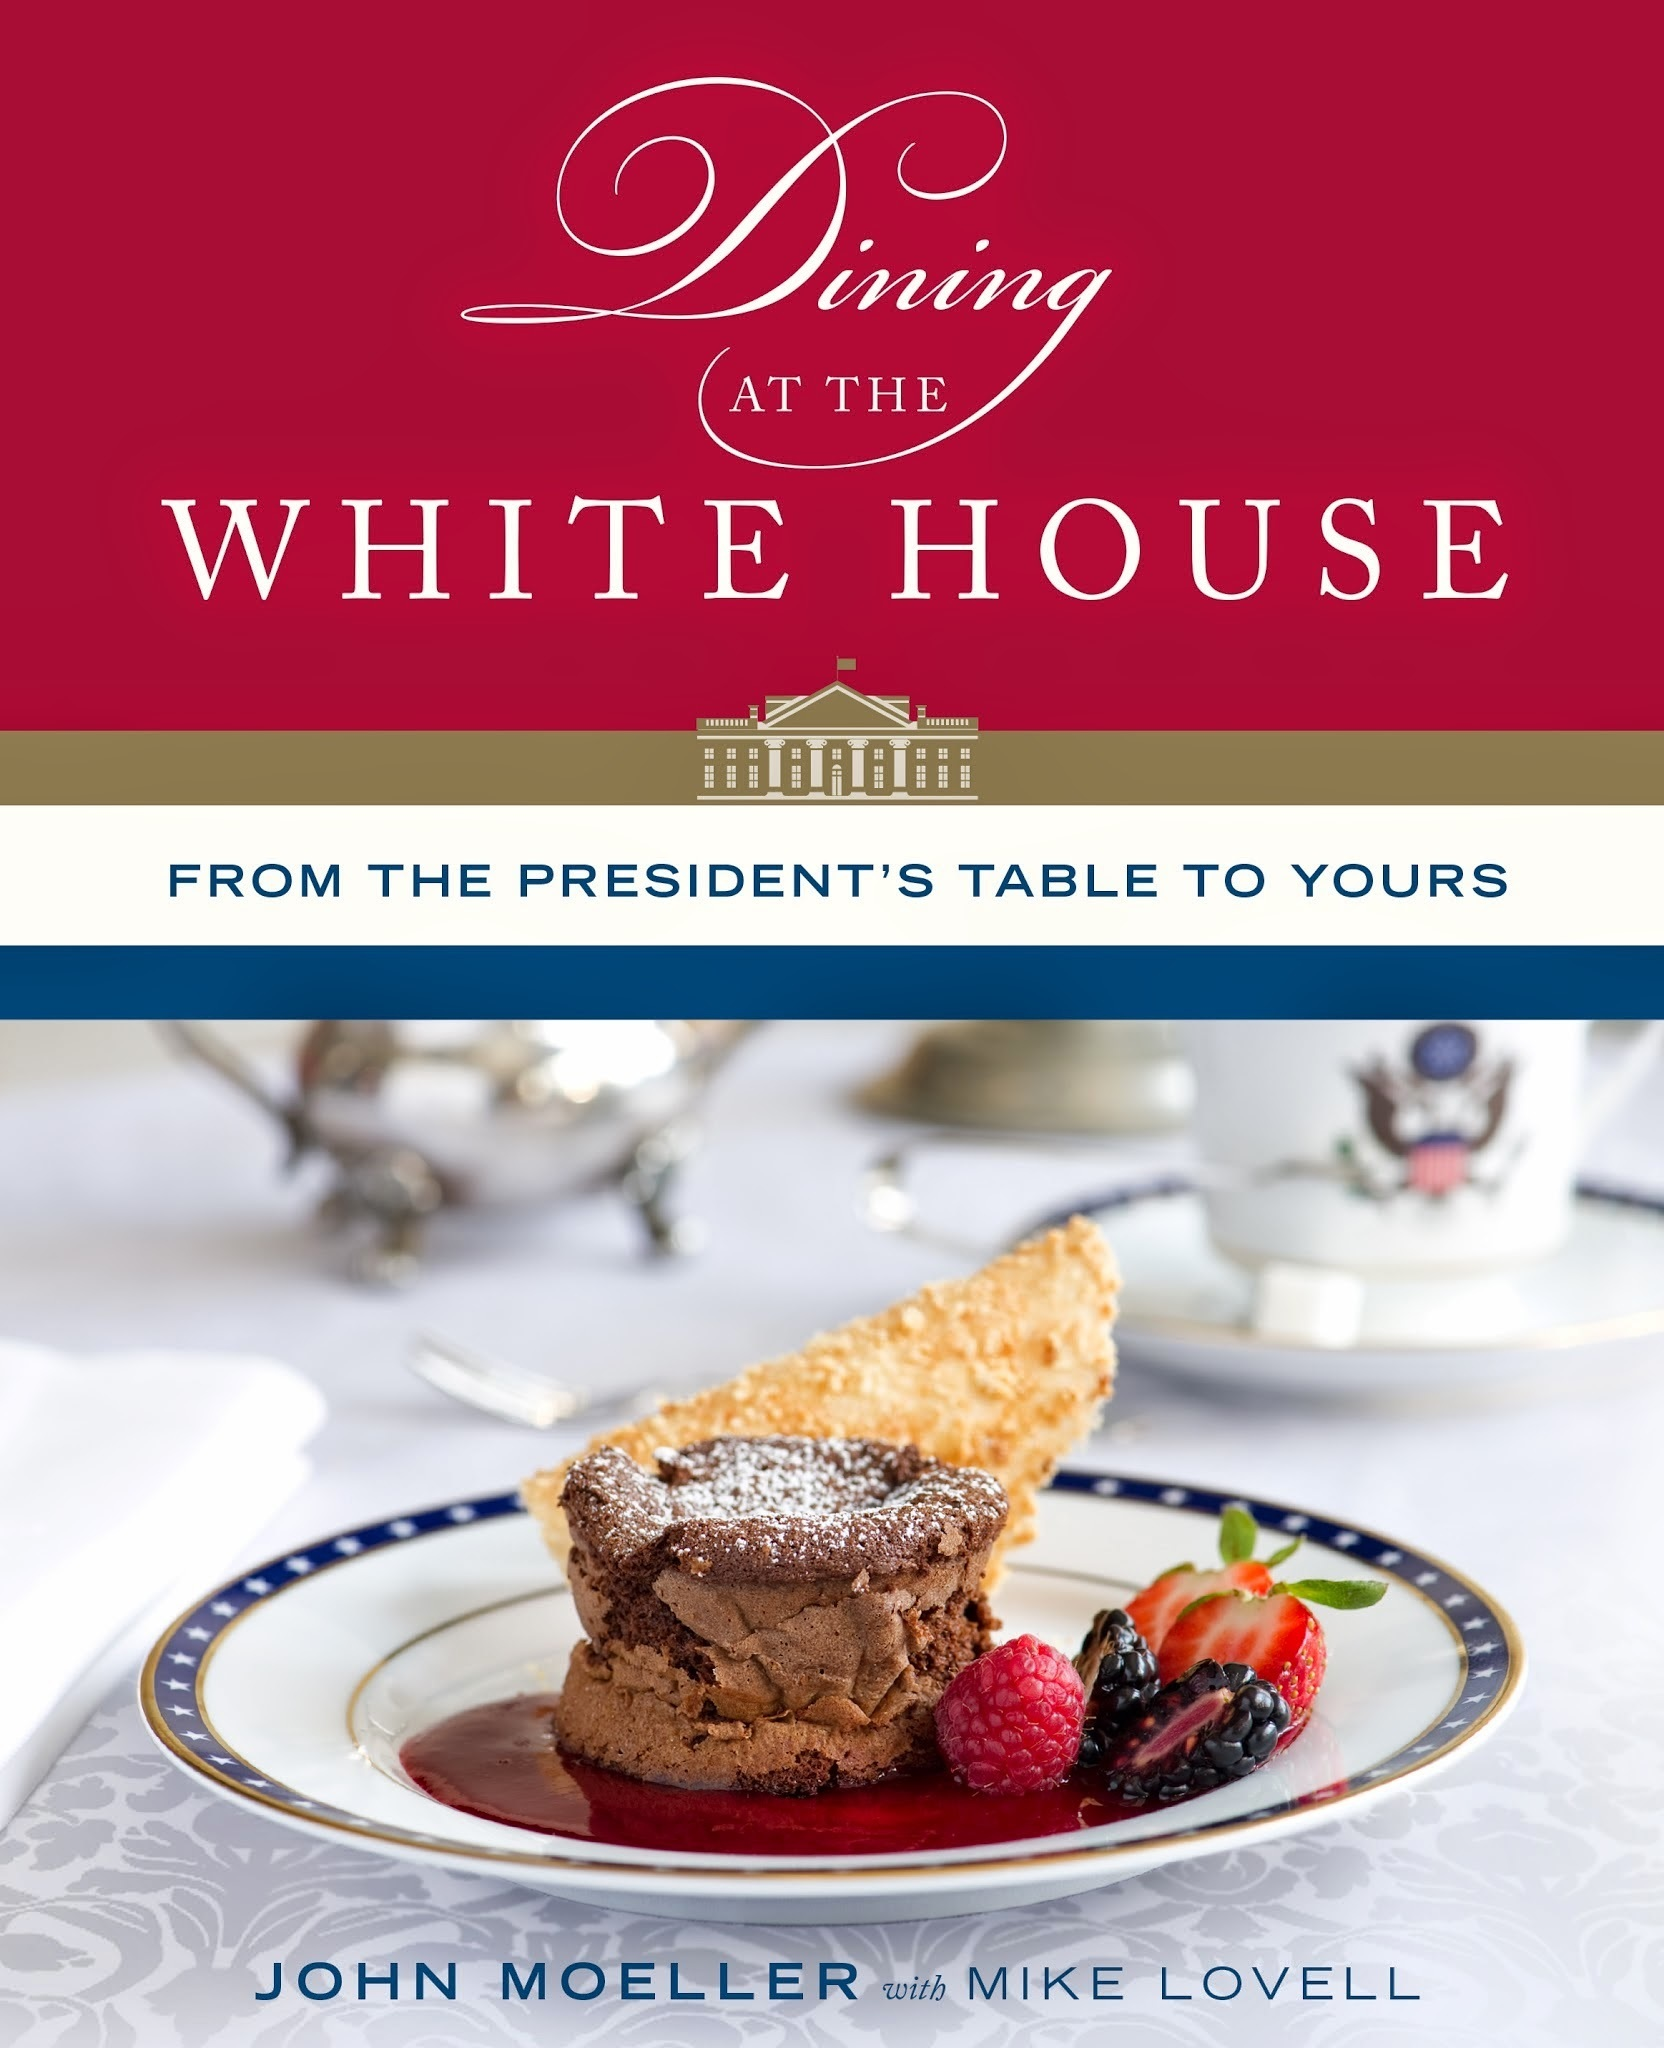 Interview with White House Chef John Moeller featuring Dining at the White House